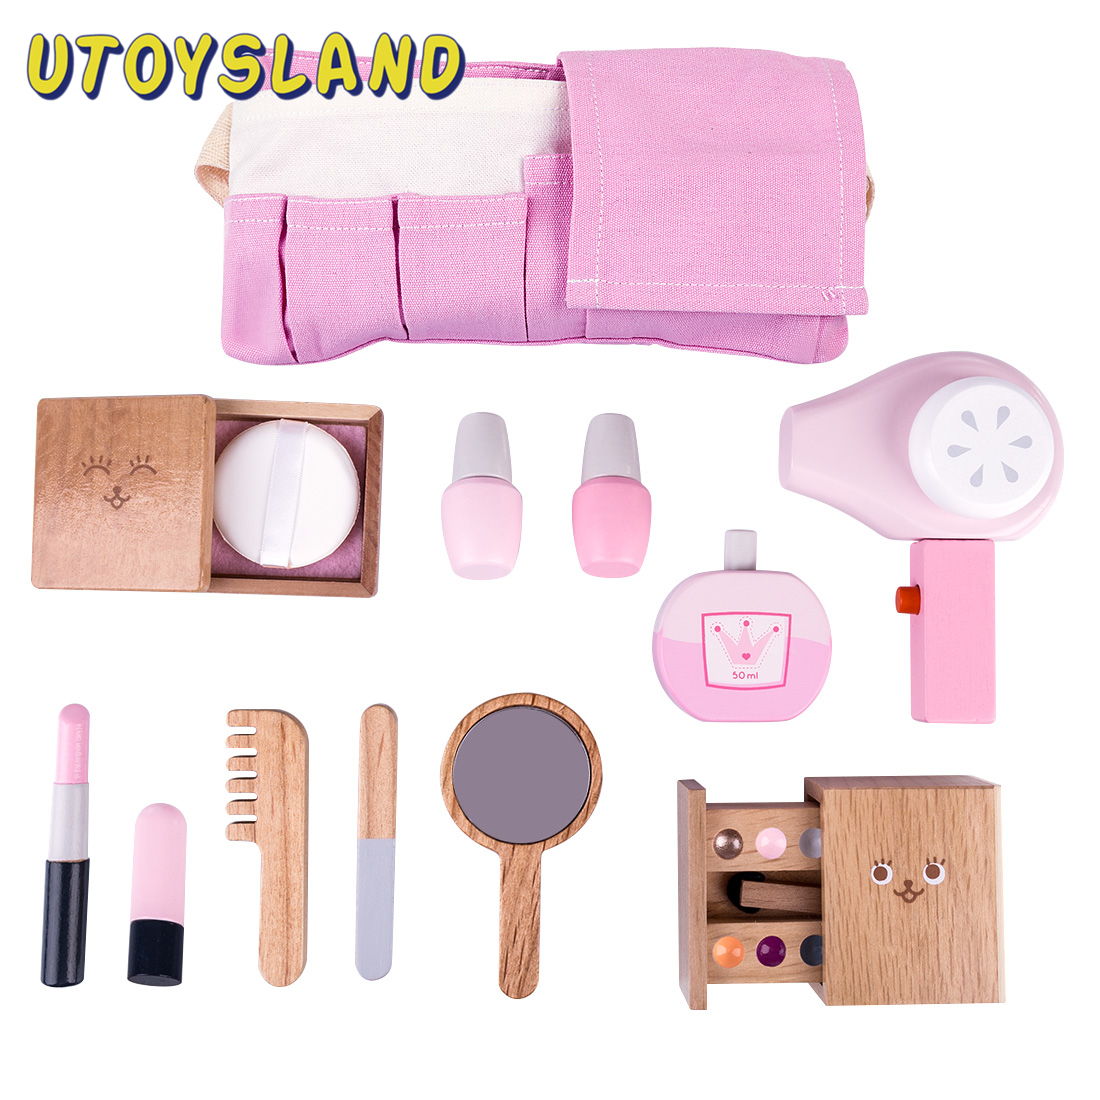 12Pcs Children Wooden Makeup Pretend Play Set Simulation Hair Dryer Toys Role Playing Game Educational Toys Gift For Children